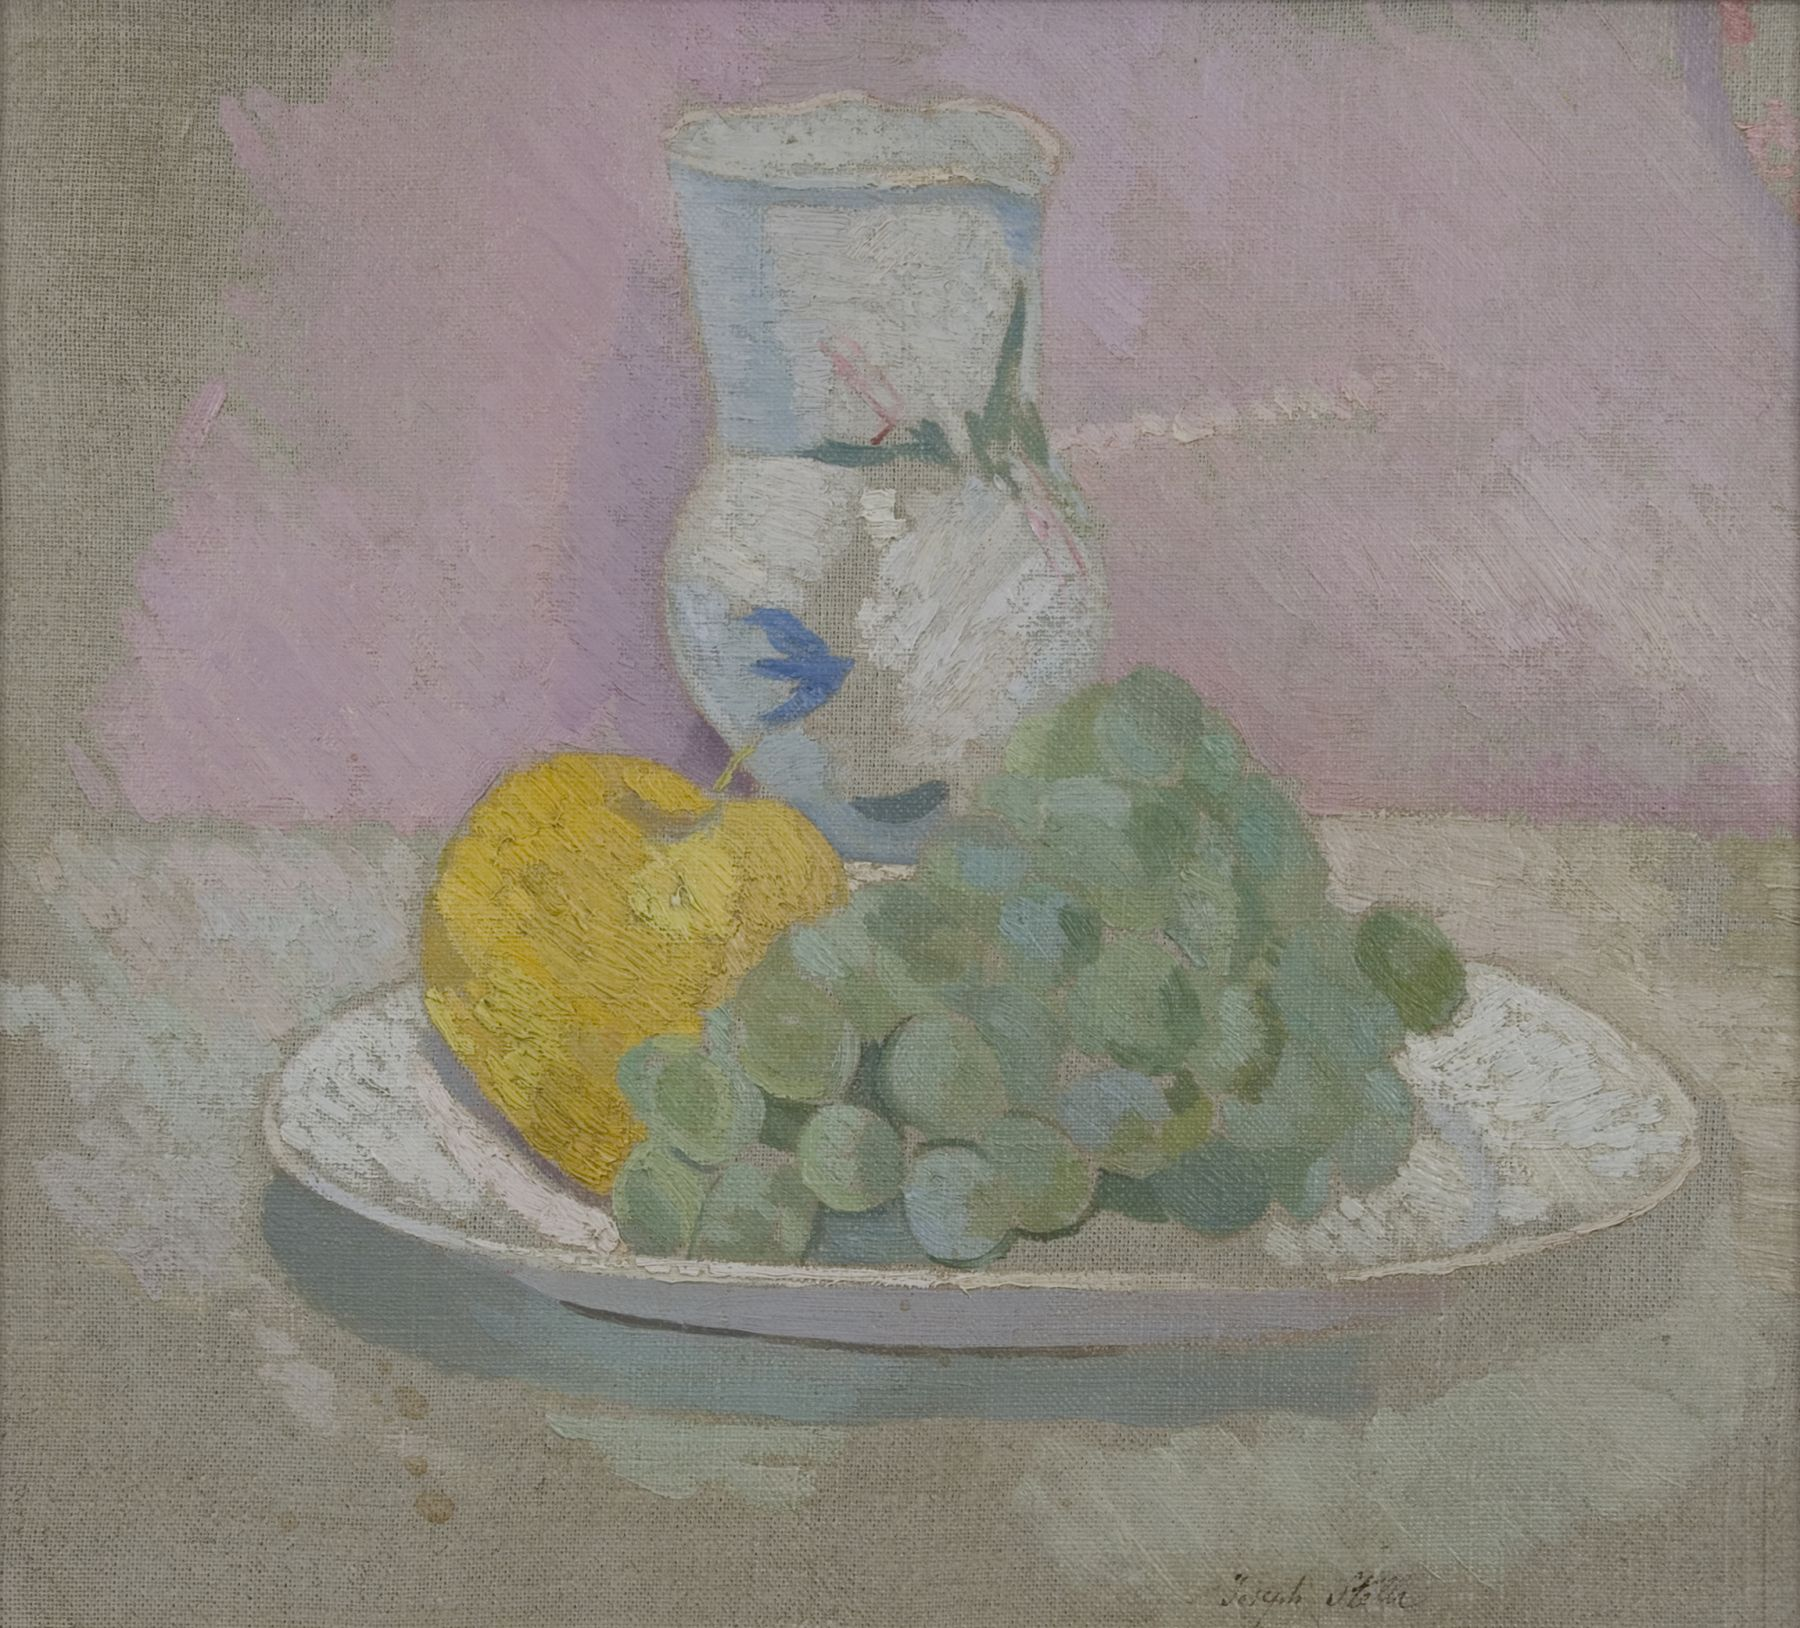 Joseph Stella, Still Life with Grapes, n.d., oil on canvas, 11 1/8 x 12 1/8 inches